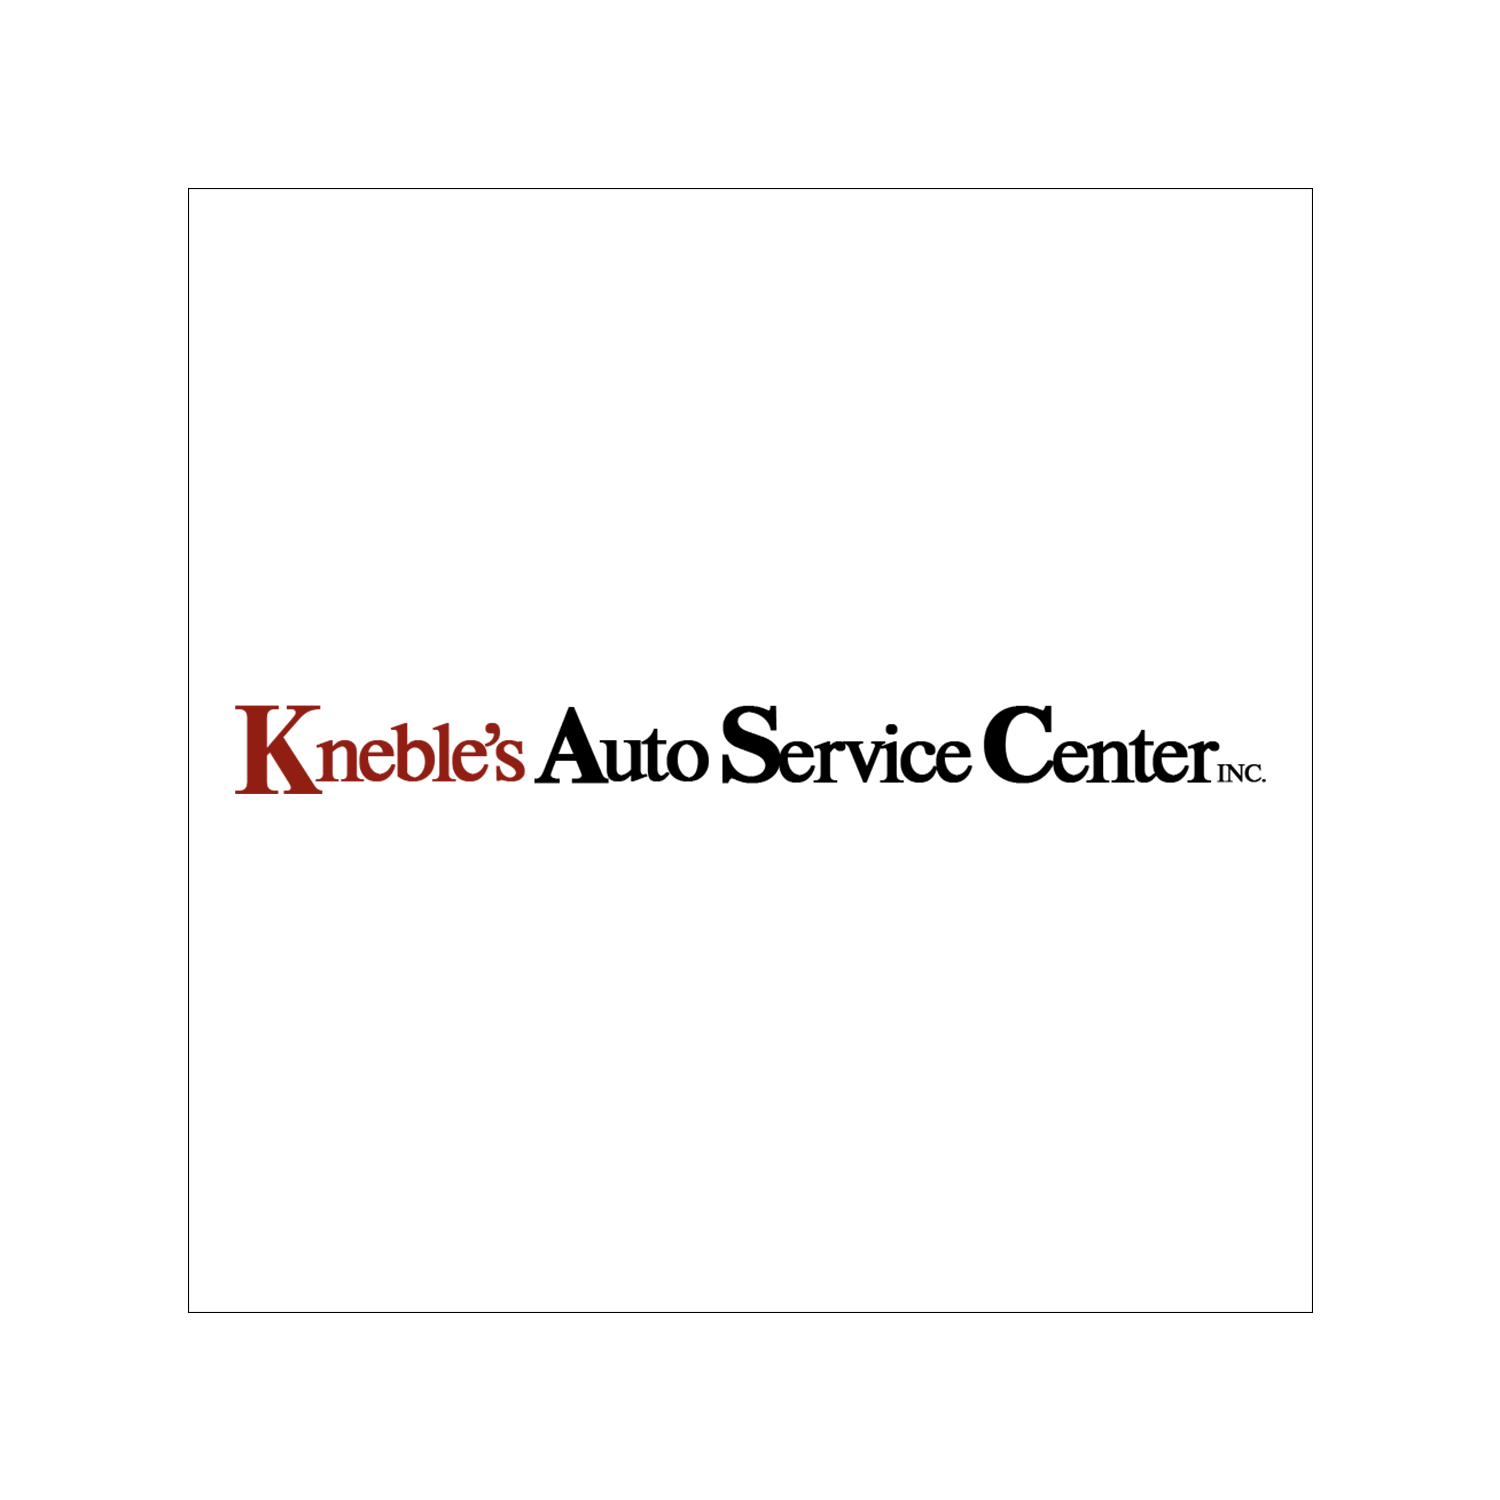 Kneble's Auto Service Center Inc.